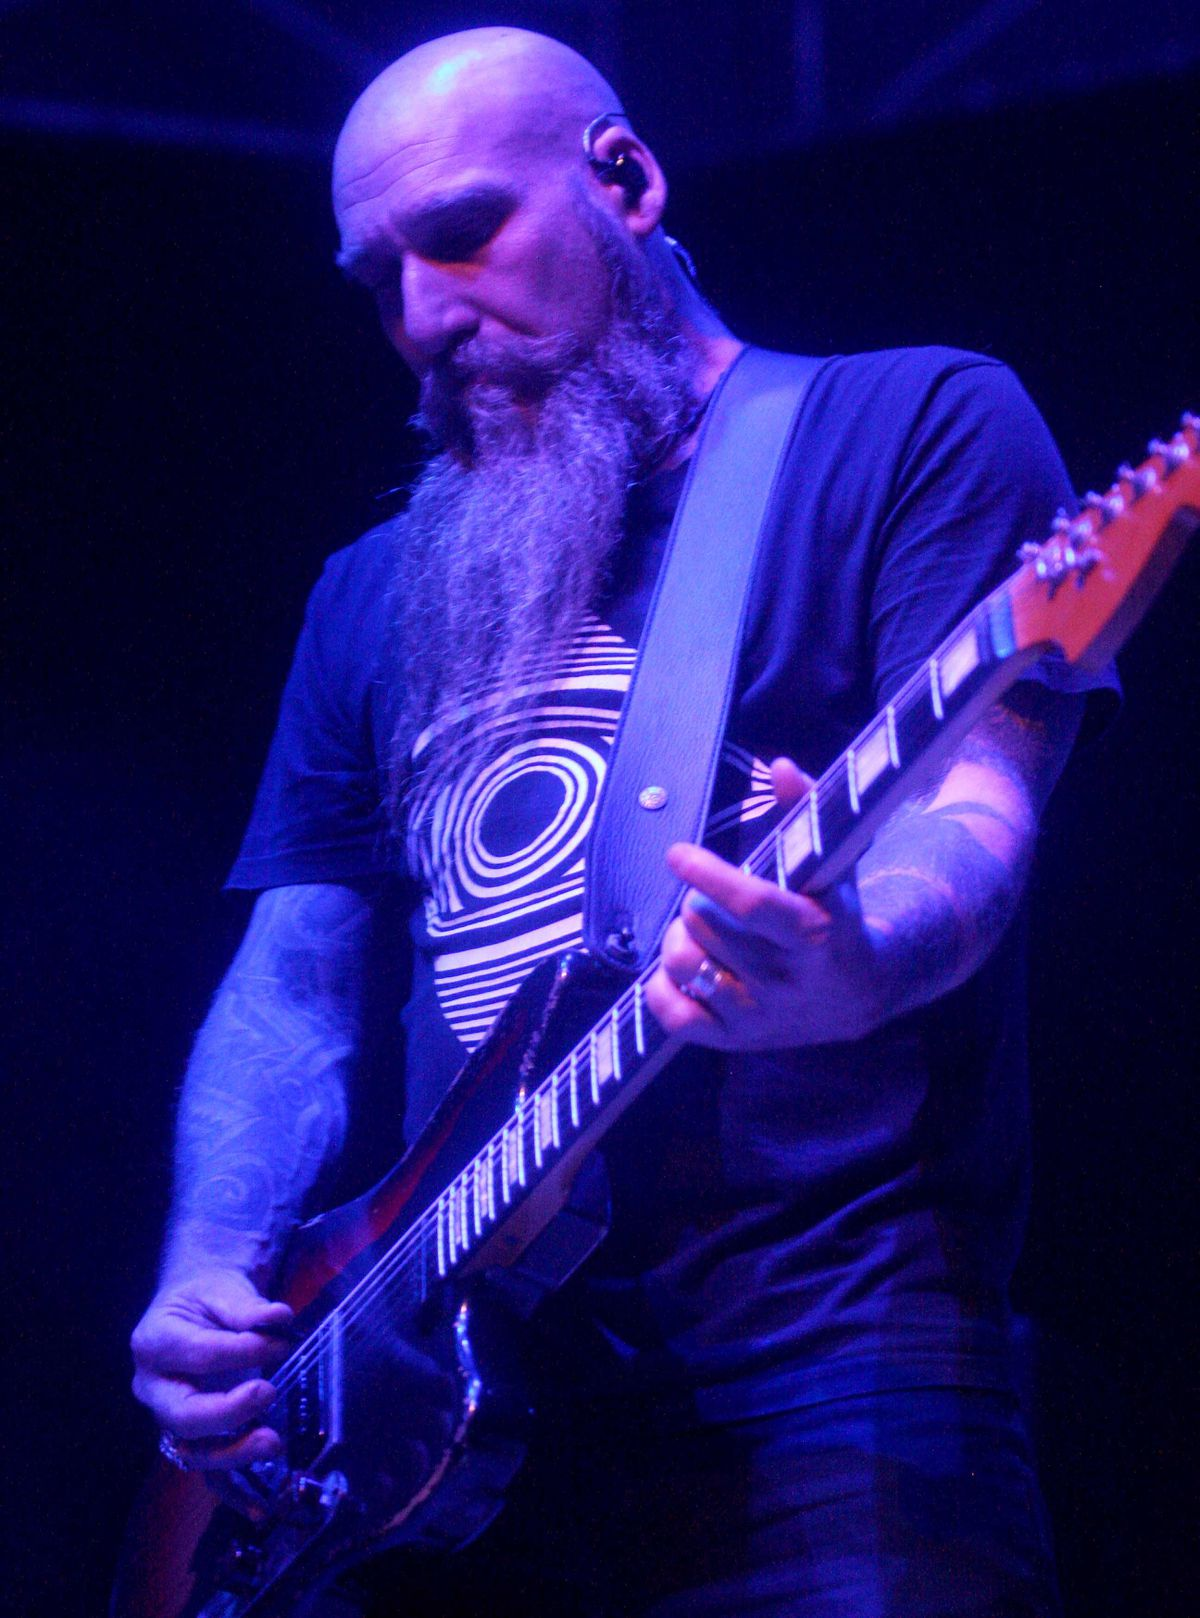 Neurosis at Supersonic Festival 2019. Pictures by: Andy Shaw